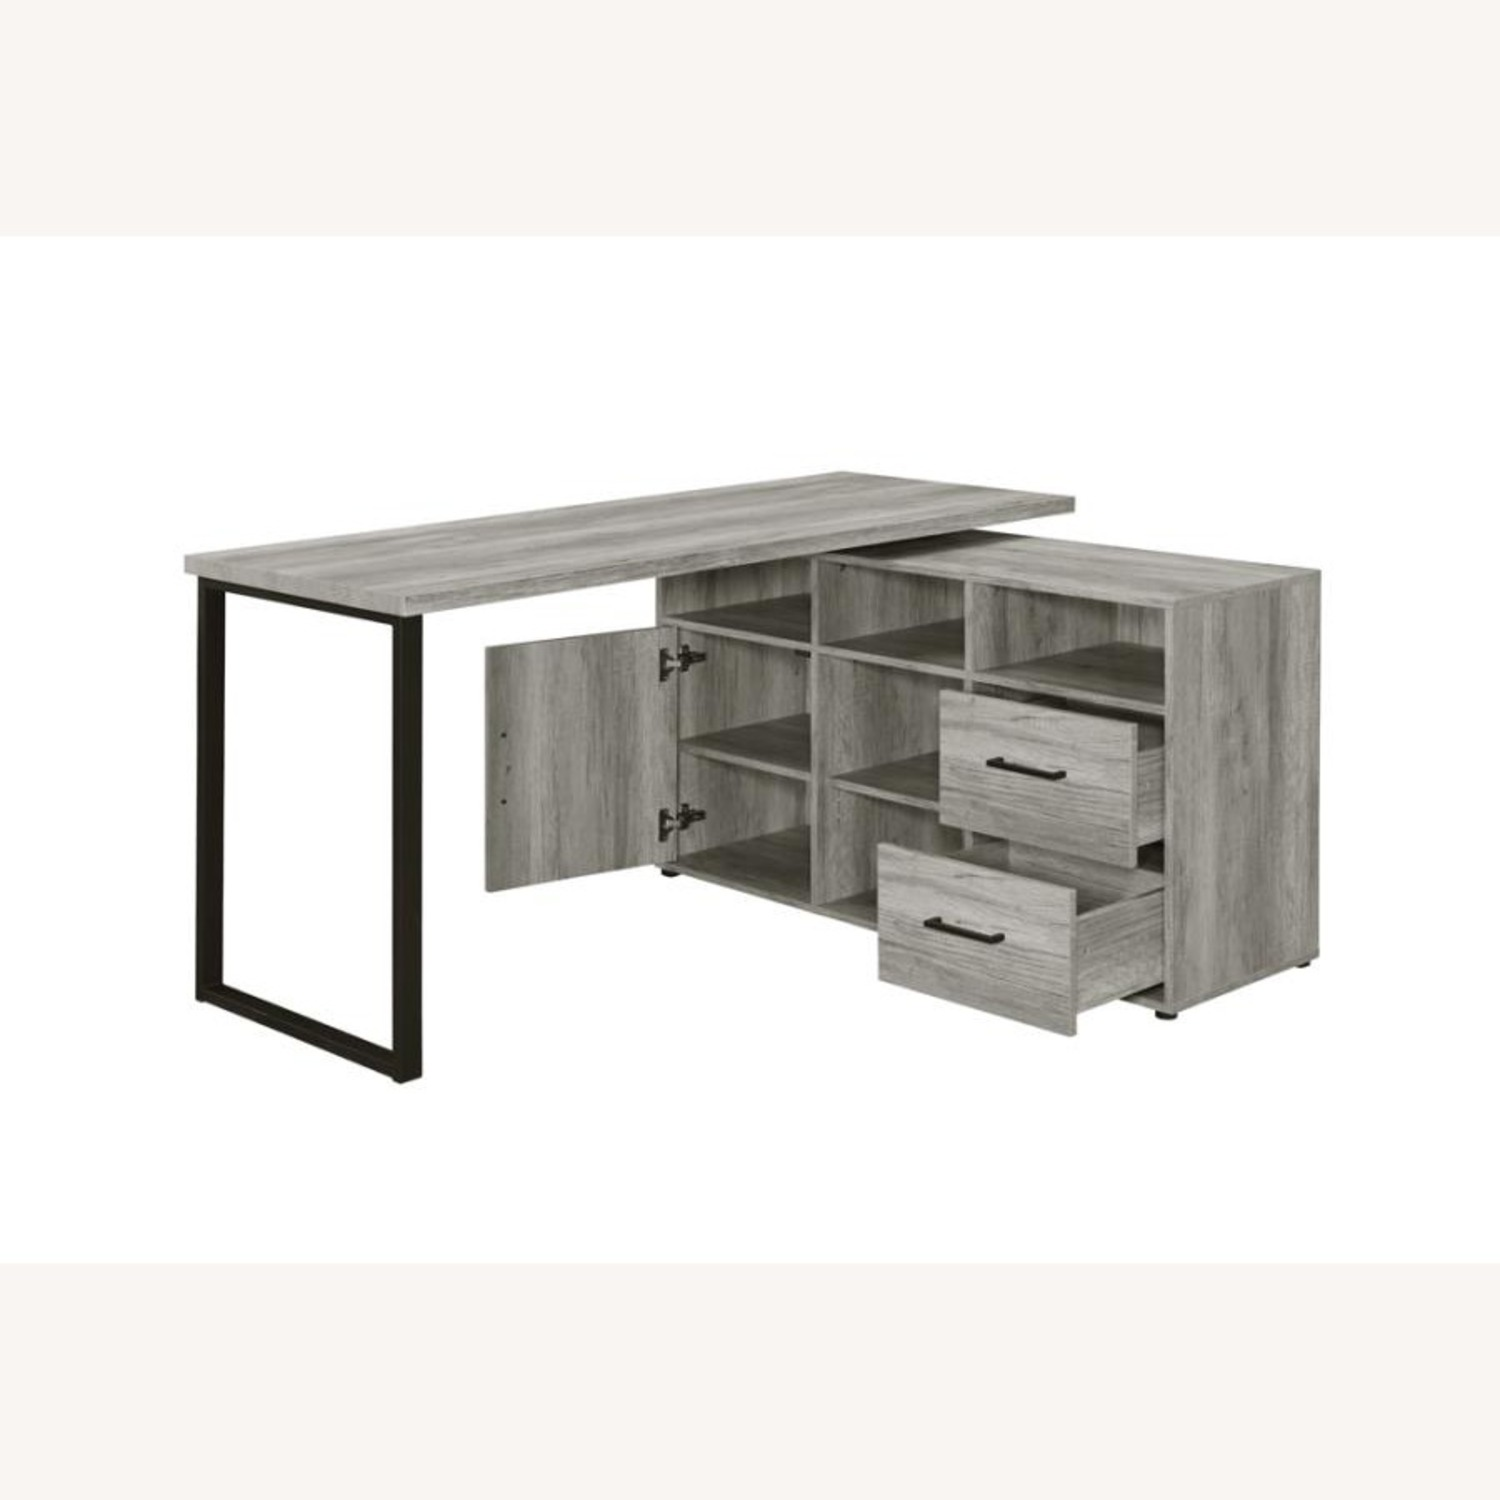 L-Shaped Office Desk In Grey Driftwood Finish - image-3